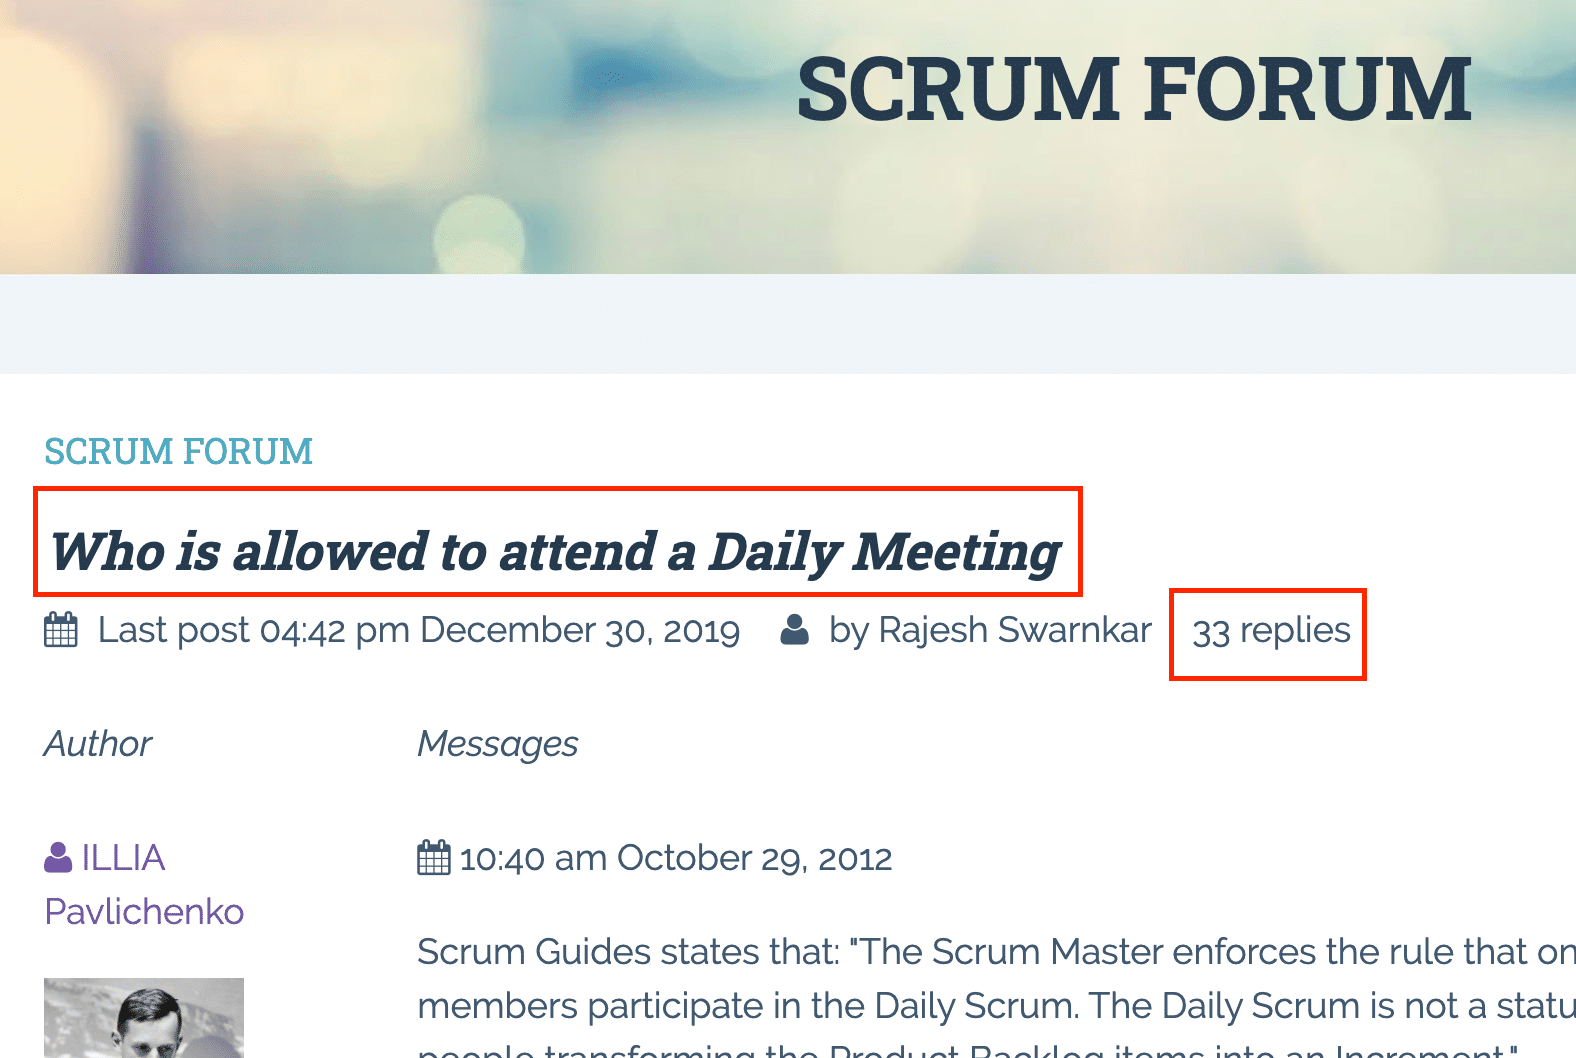 Scrum Forum: Who is allowed to attend a daily meeting?